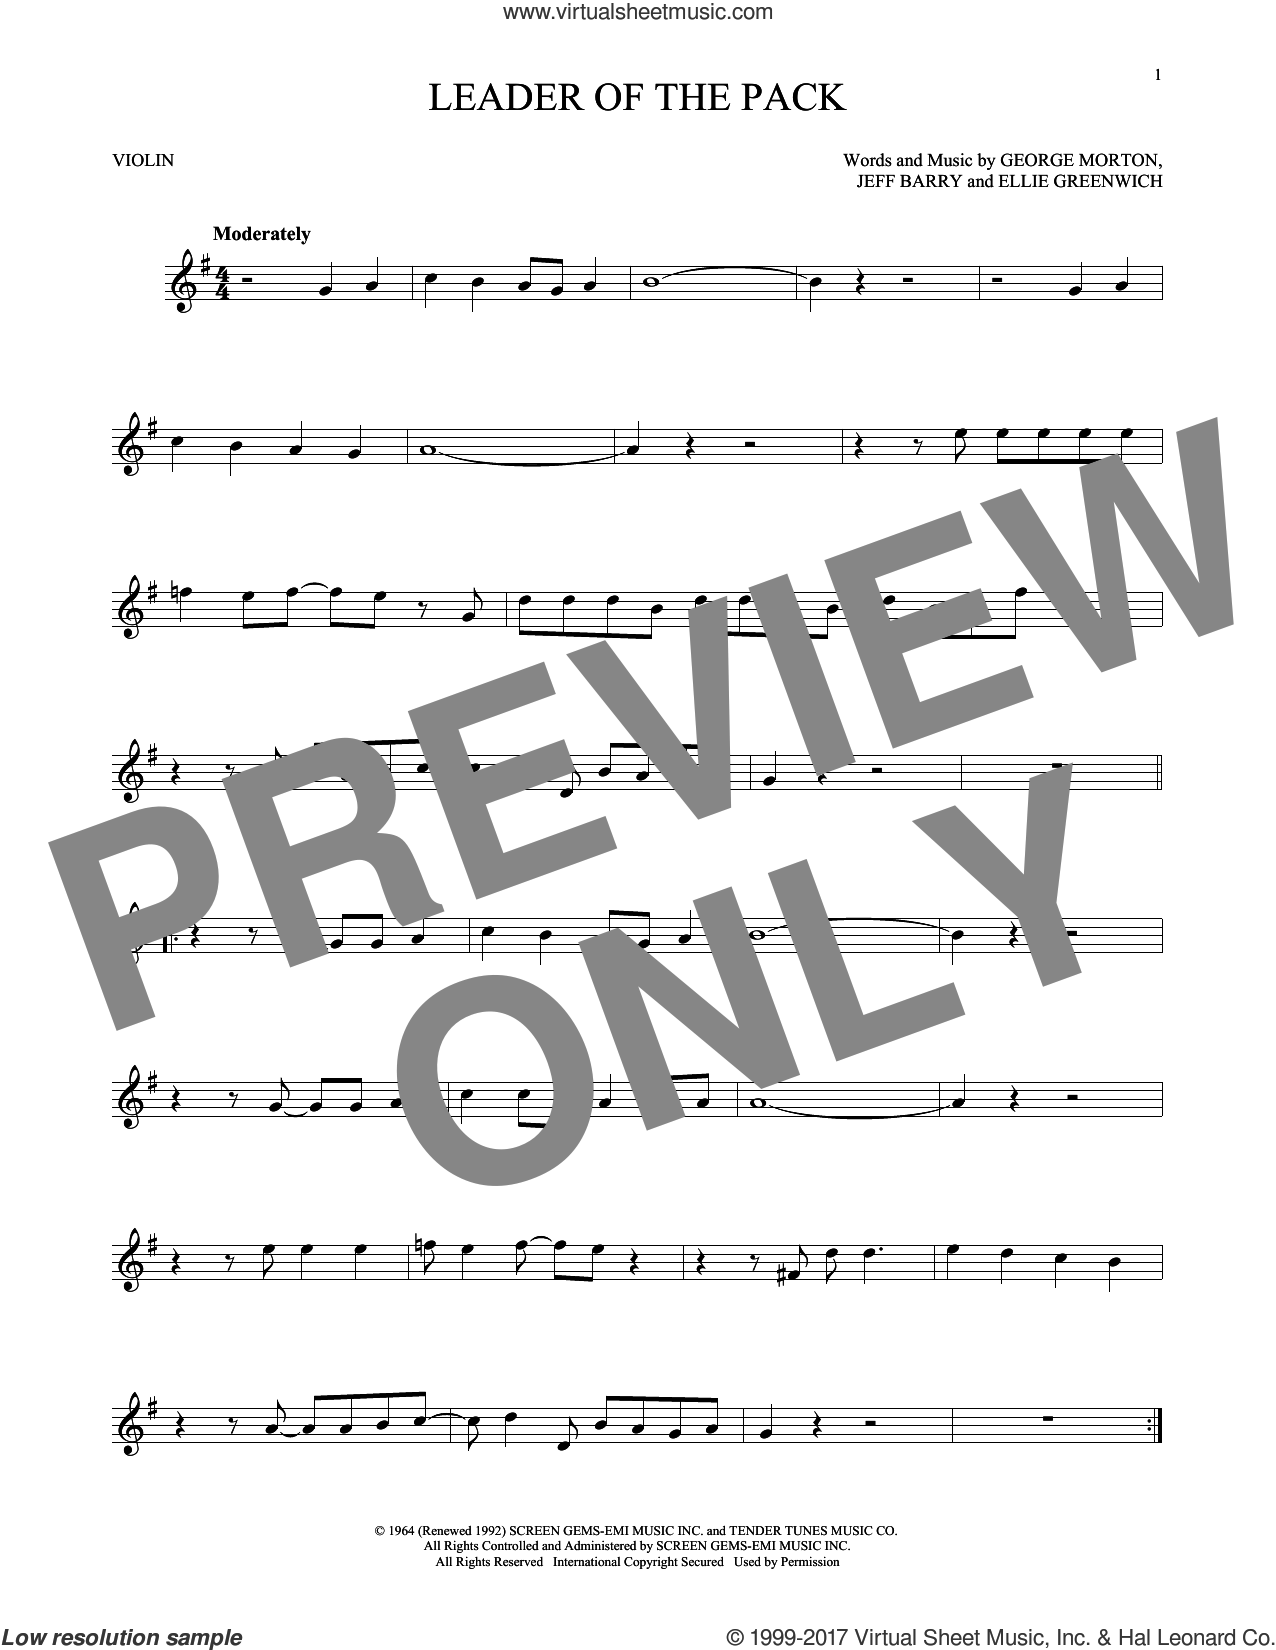 Leader Of The Pack sheet music for violin solo by The Shangri-Las, Ellie Greenwich and Jeff Barry, intermediate. Score Image Preview.